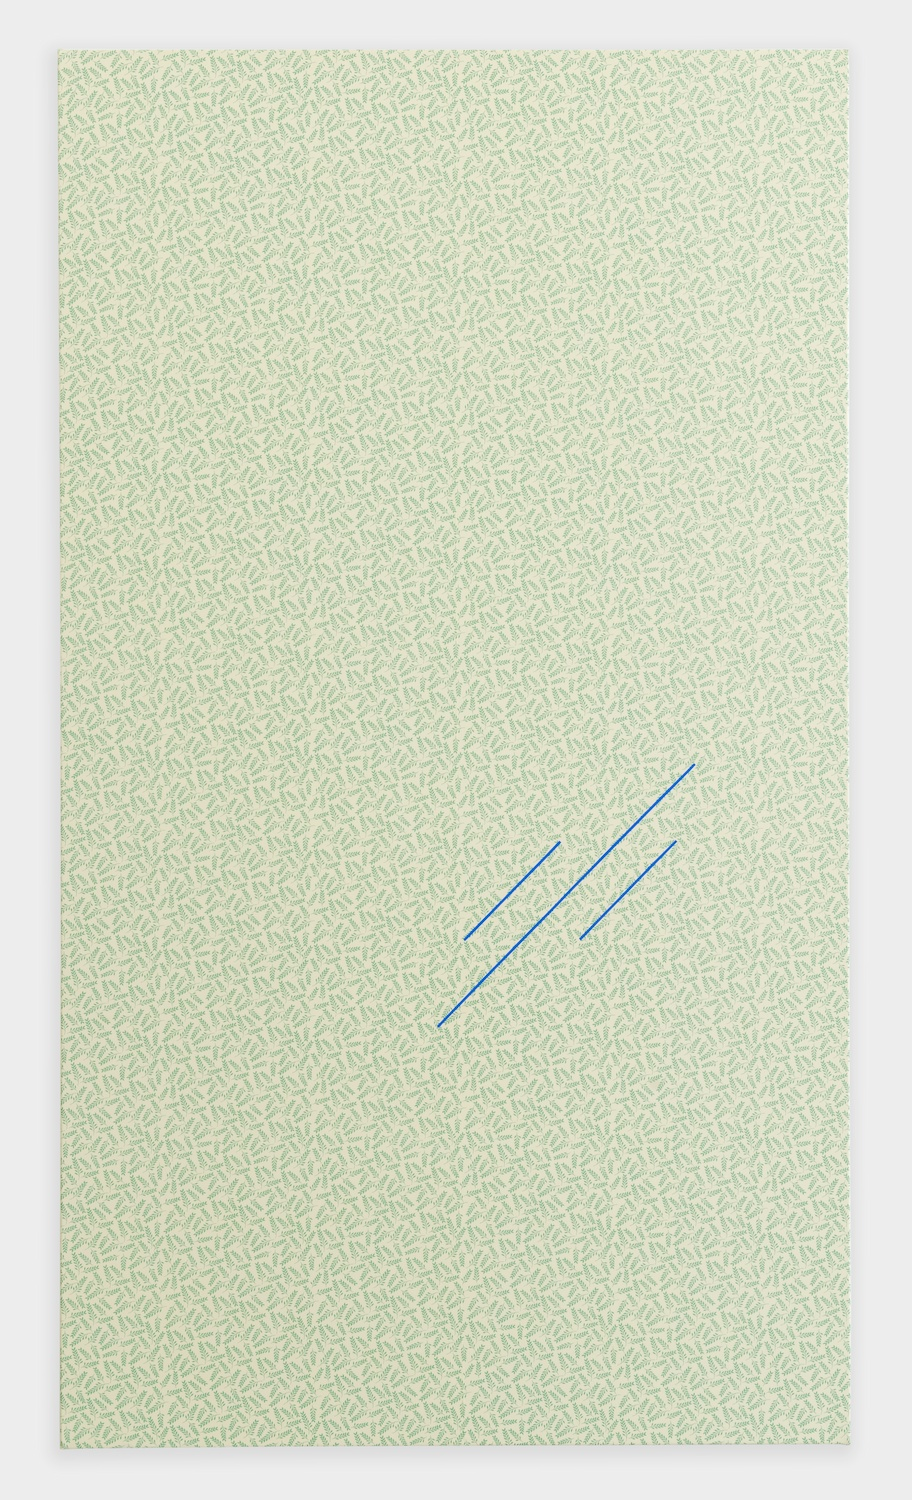 Paul Cowan  BCEAUSE THE SKY IS BULE  2013 Chroma-key blue paint on fabric 72h x 41w in PC076